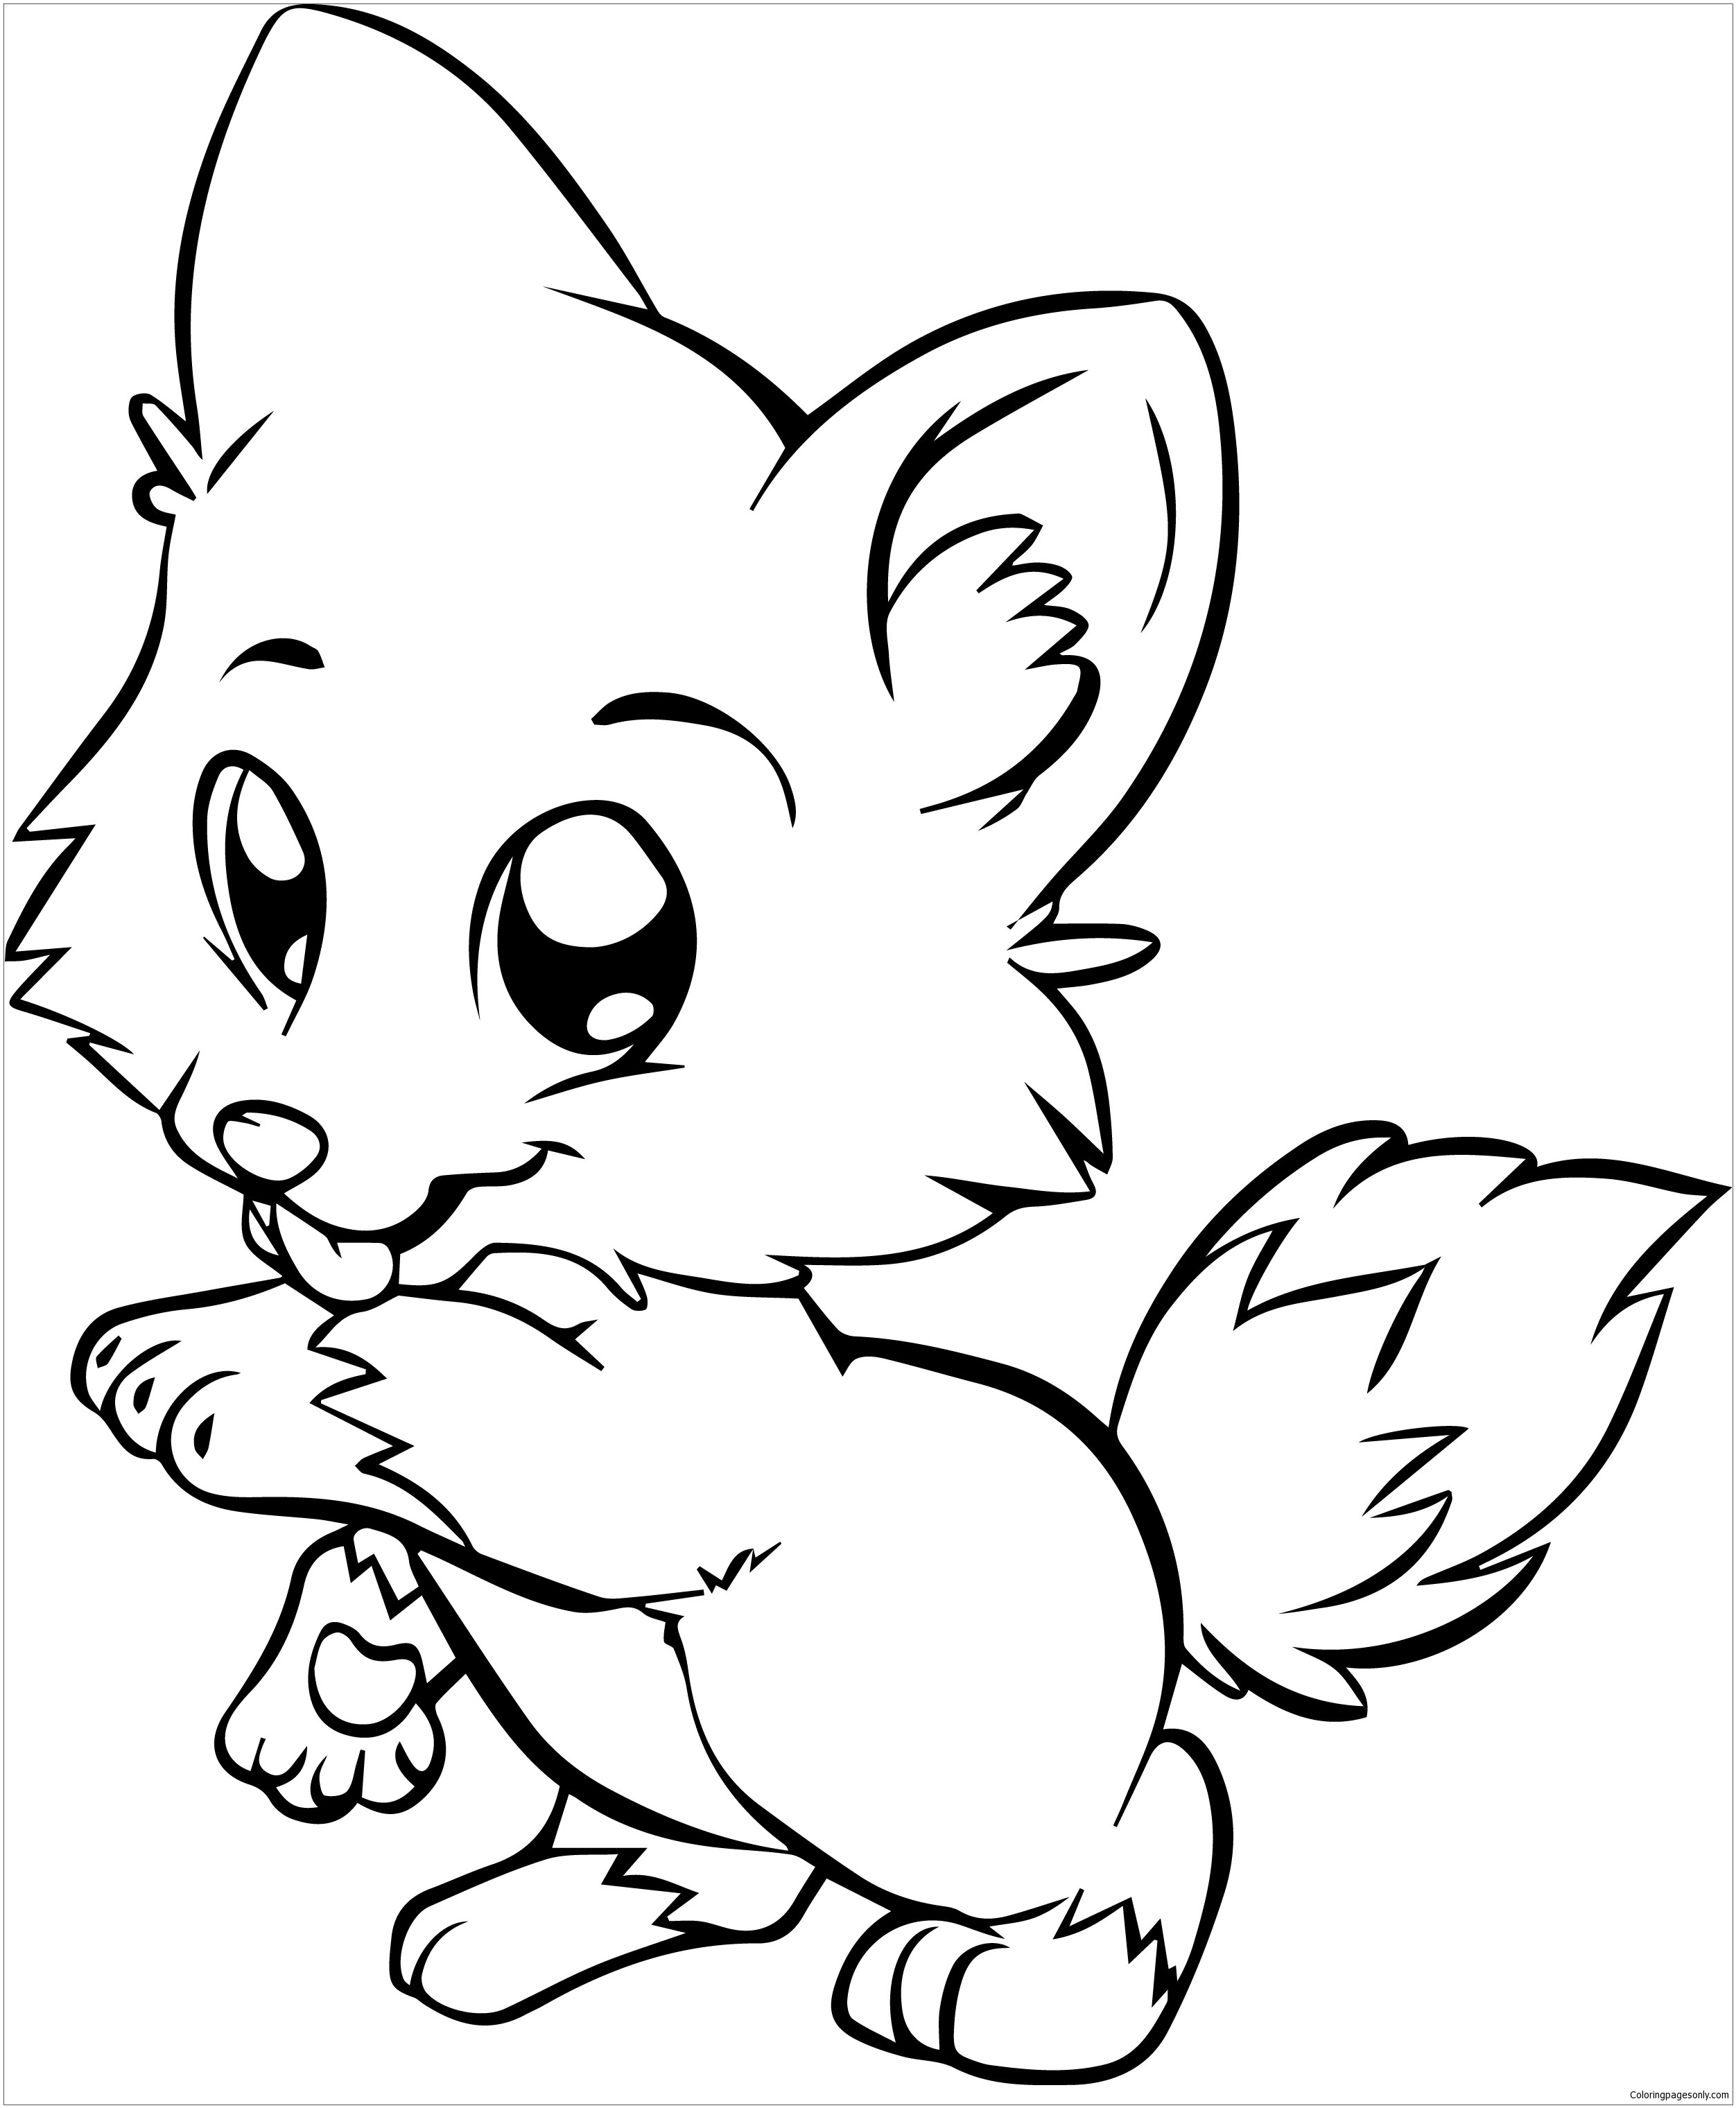 dog coloring coloring pages best dog coloring pages for kids dog coloring